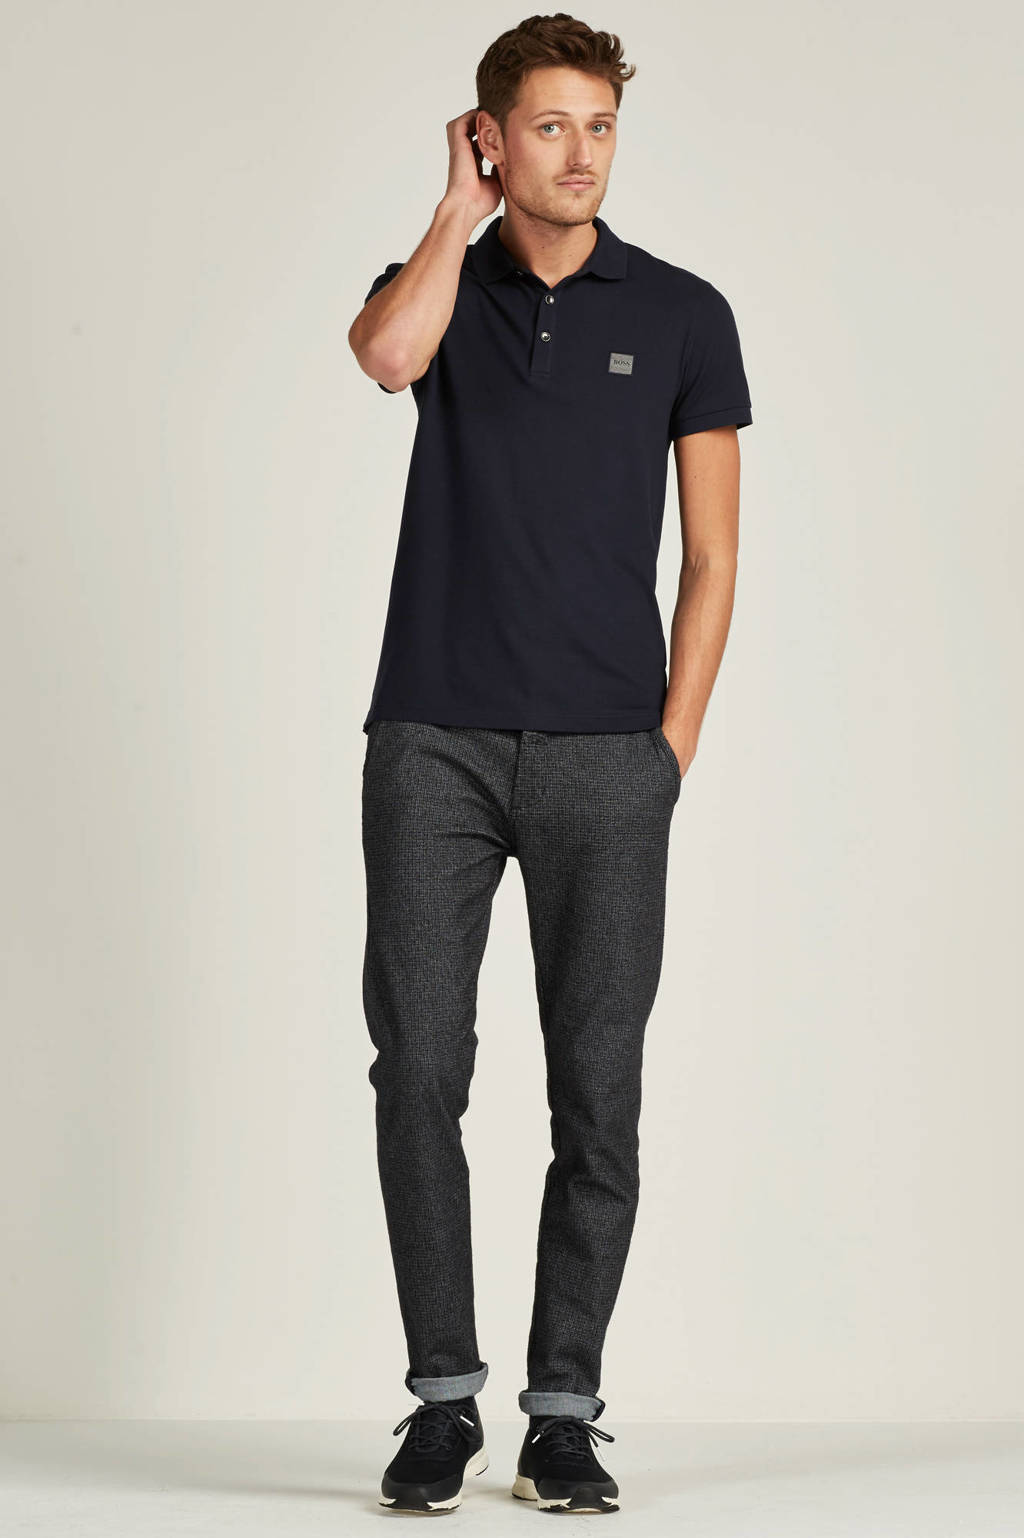 BOSS Casual Passenger slim fit polo, Donkerblauw/grijs